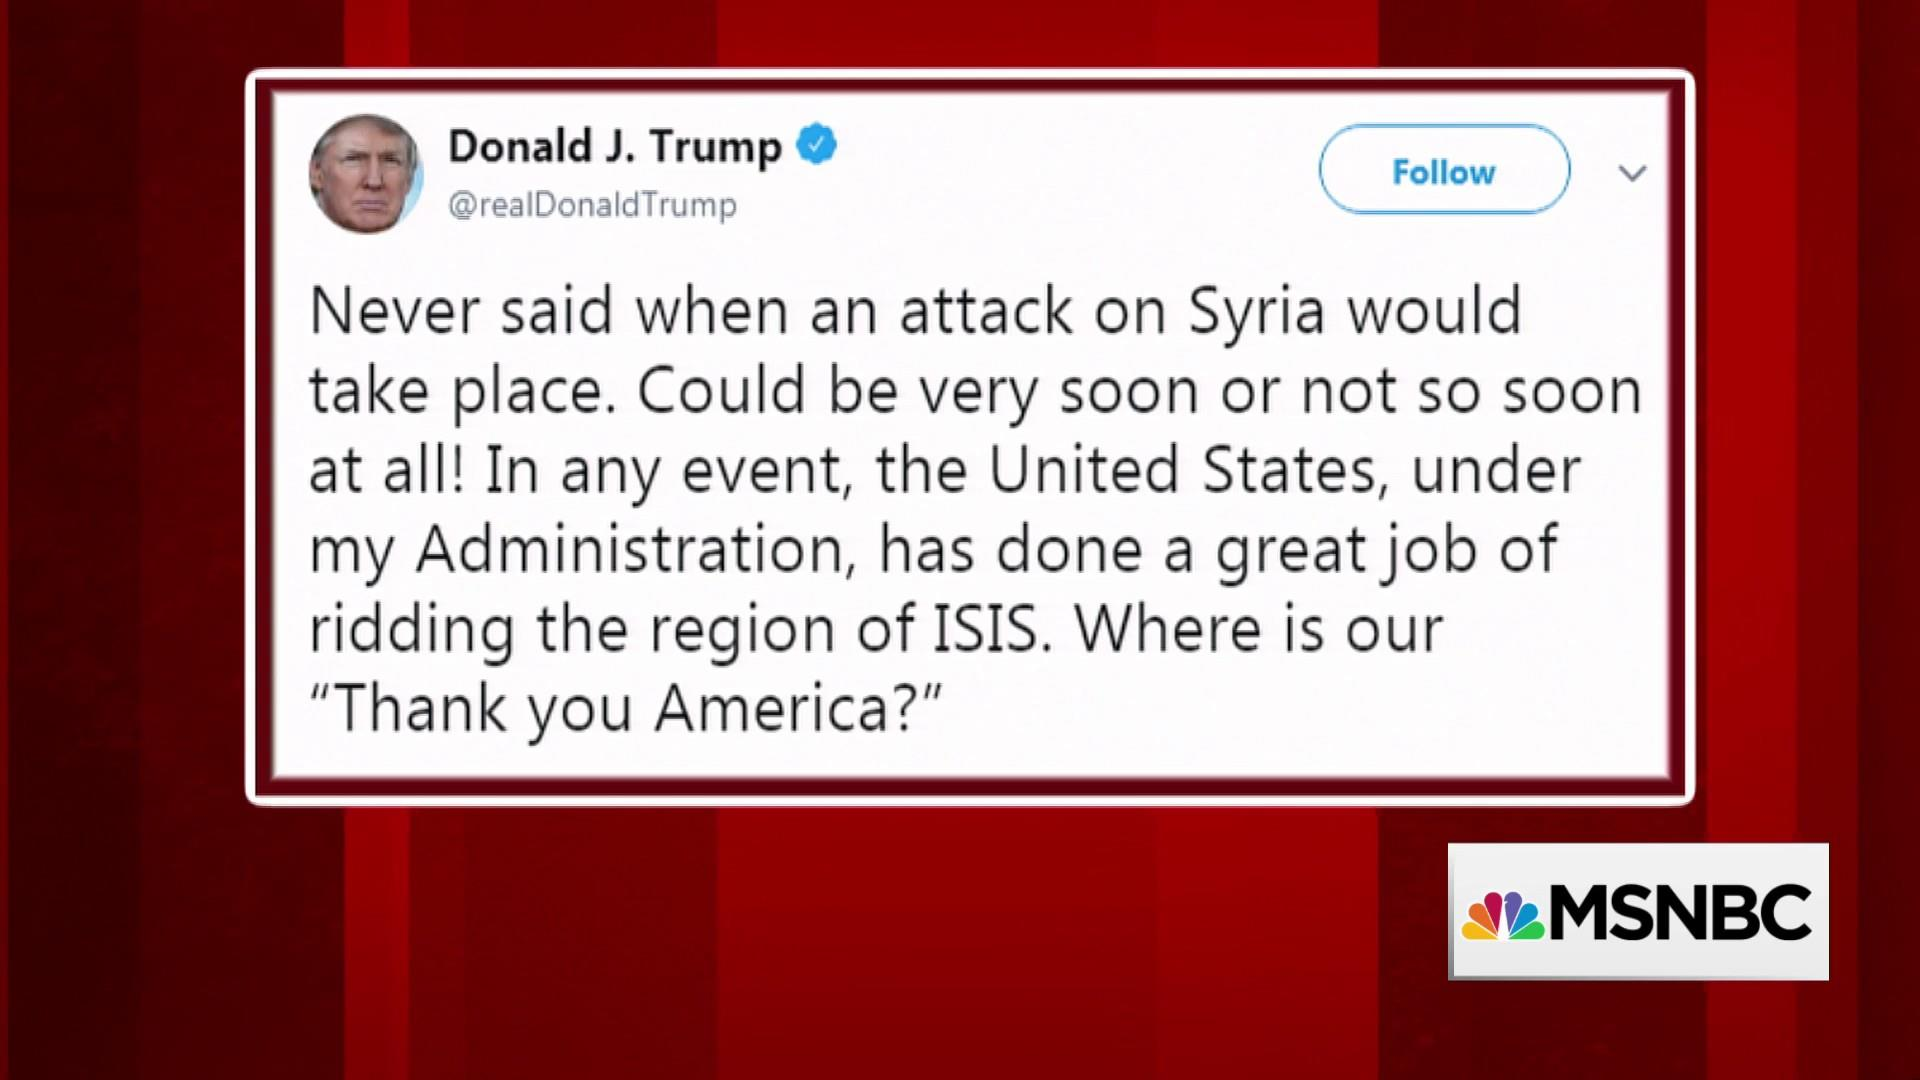 Trump tweets 'Never said when' US would attack Syria